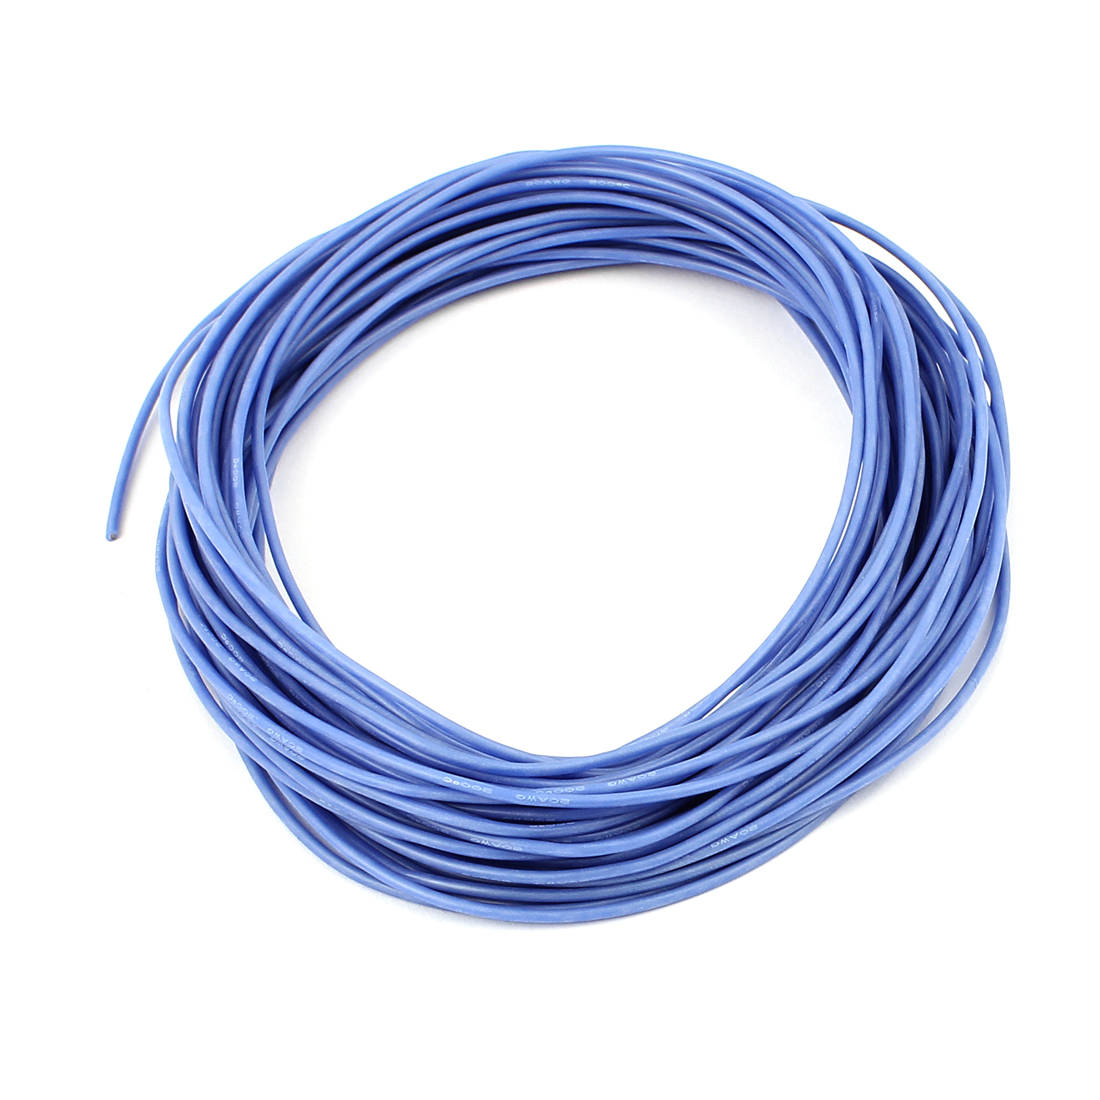 15M 20AWG Electric Copper Core Flexible Silicone Wire Cable Blue